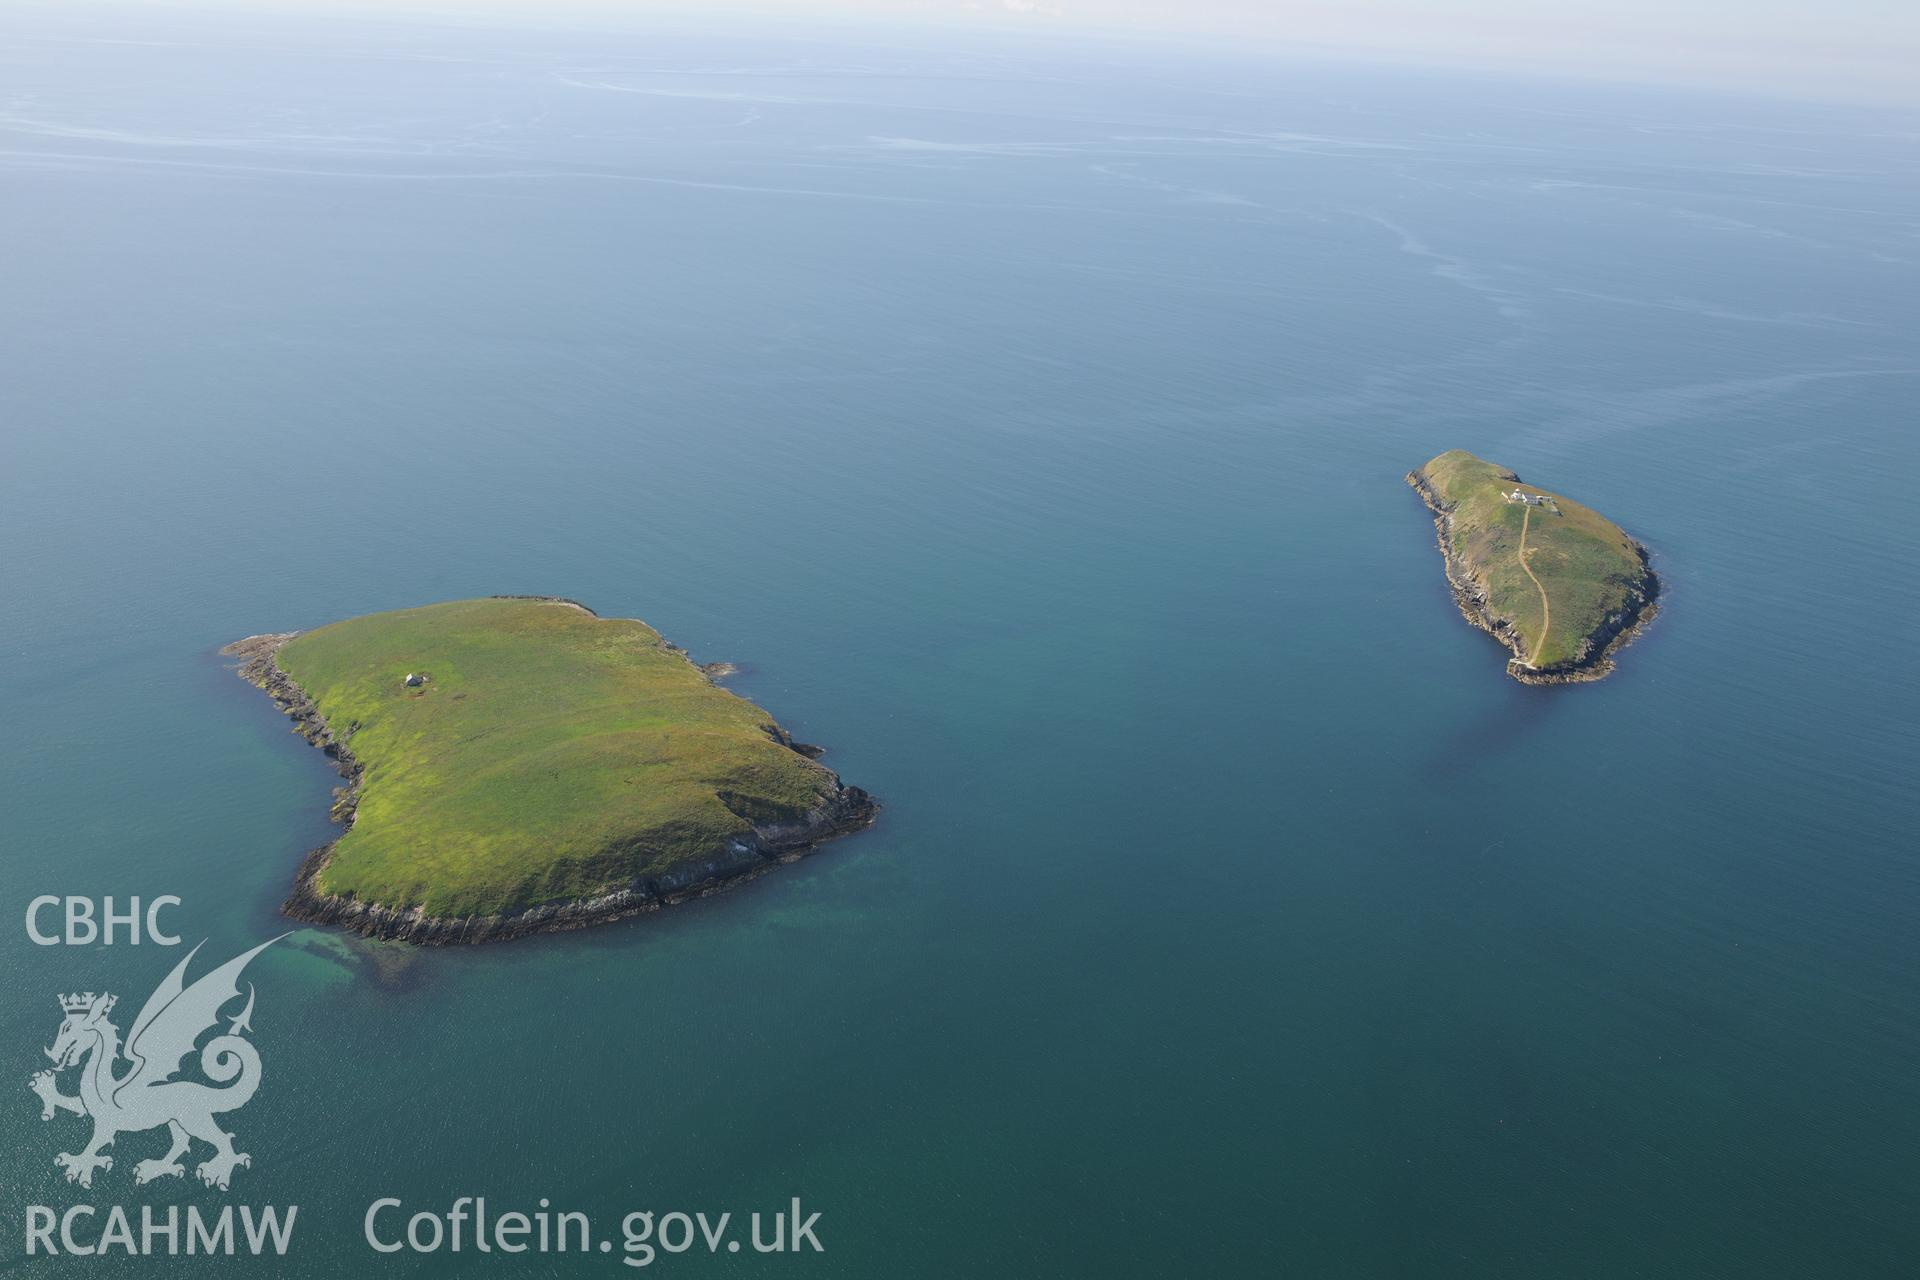 Chapel building on St. Tudwal's Island East, fishtrap off its coast, and lighthouse on St. Tudwal's Island West. Oblique aerial photograph taken during the Royal Commission's programme of archaeological aerial reconnaissance by Toby Driver on 23/06/2015.